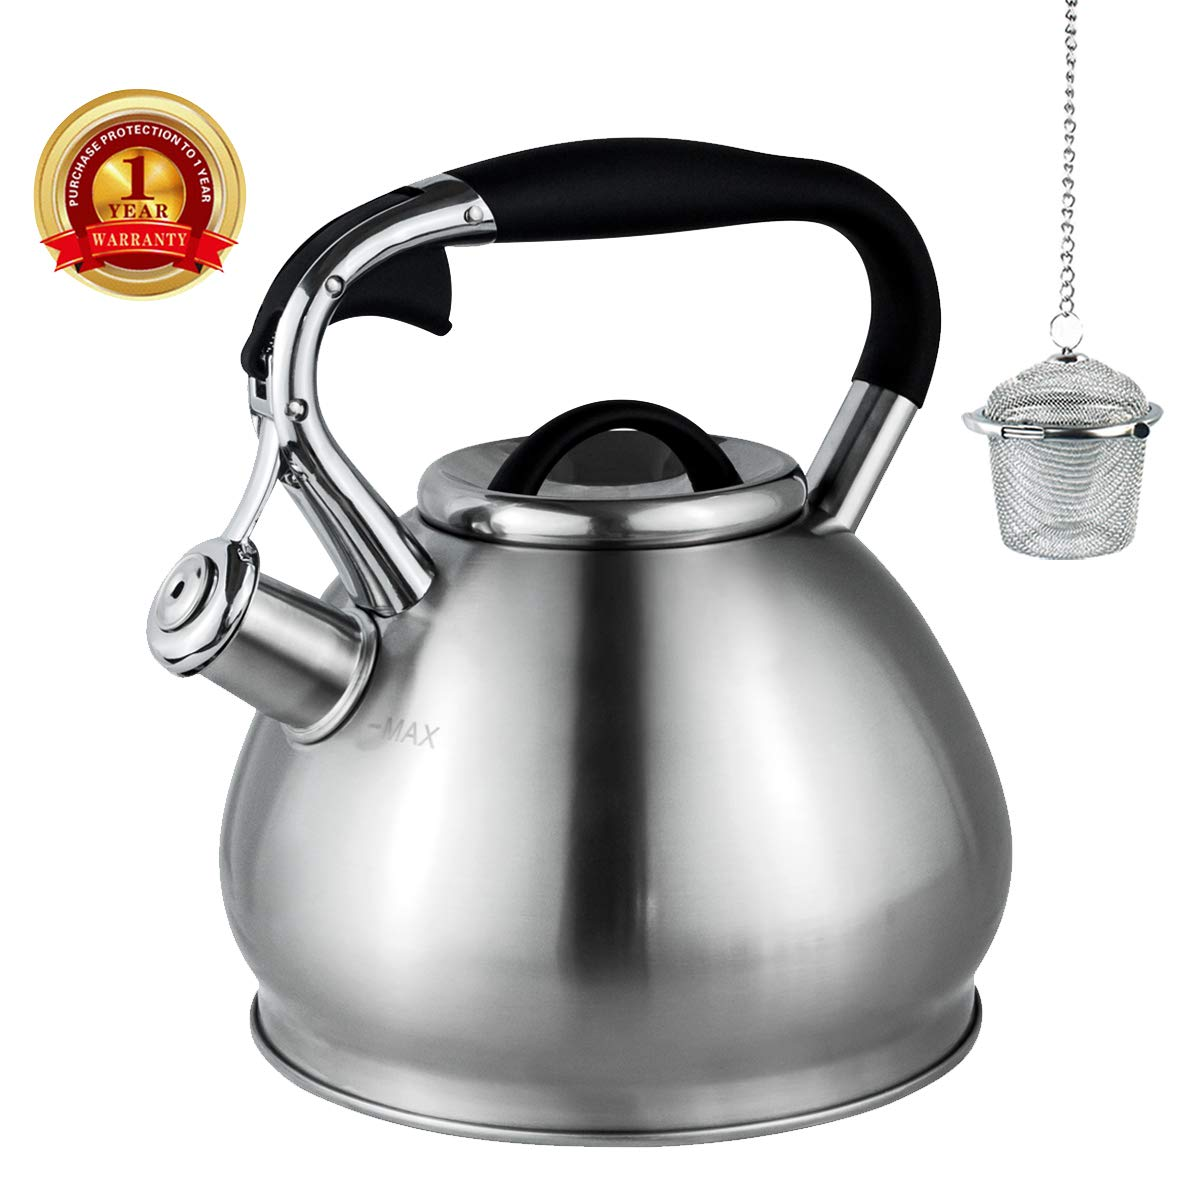 Whistling Tea Kettles Stovetop with Boils Faster Bottom,Surgical Brushed Stianless Steel Finish Whistling Teapot, 3 Quart,1YR Warranty, 1 Tea Maker Infuser Included by Kmatee by Kmatee